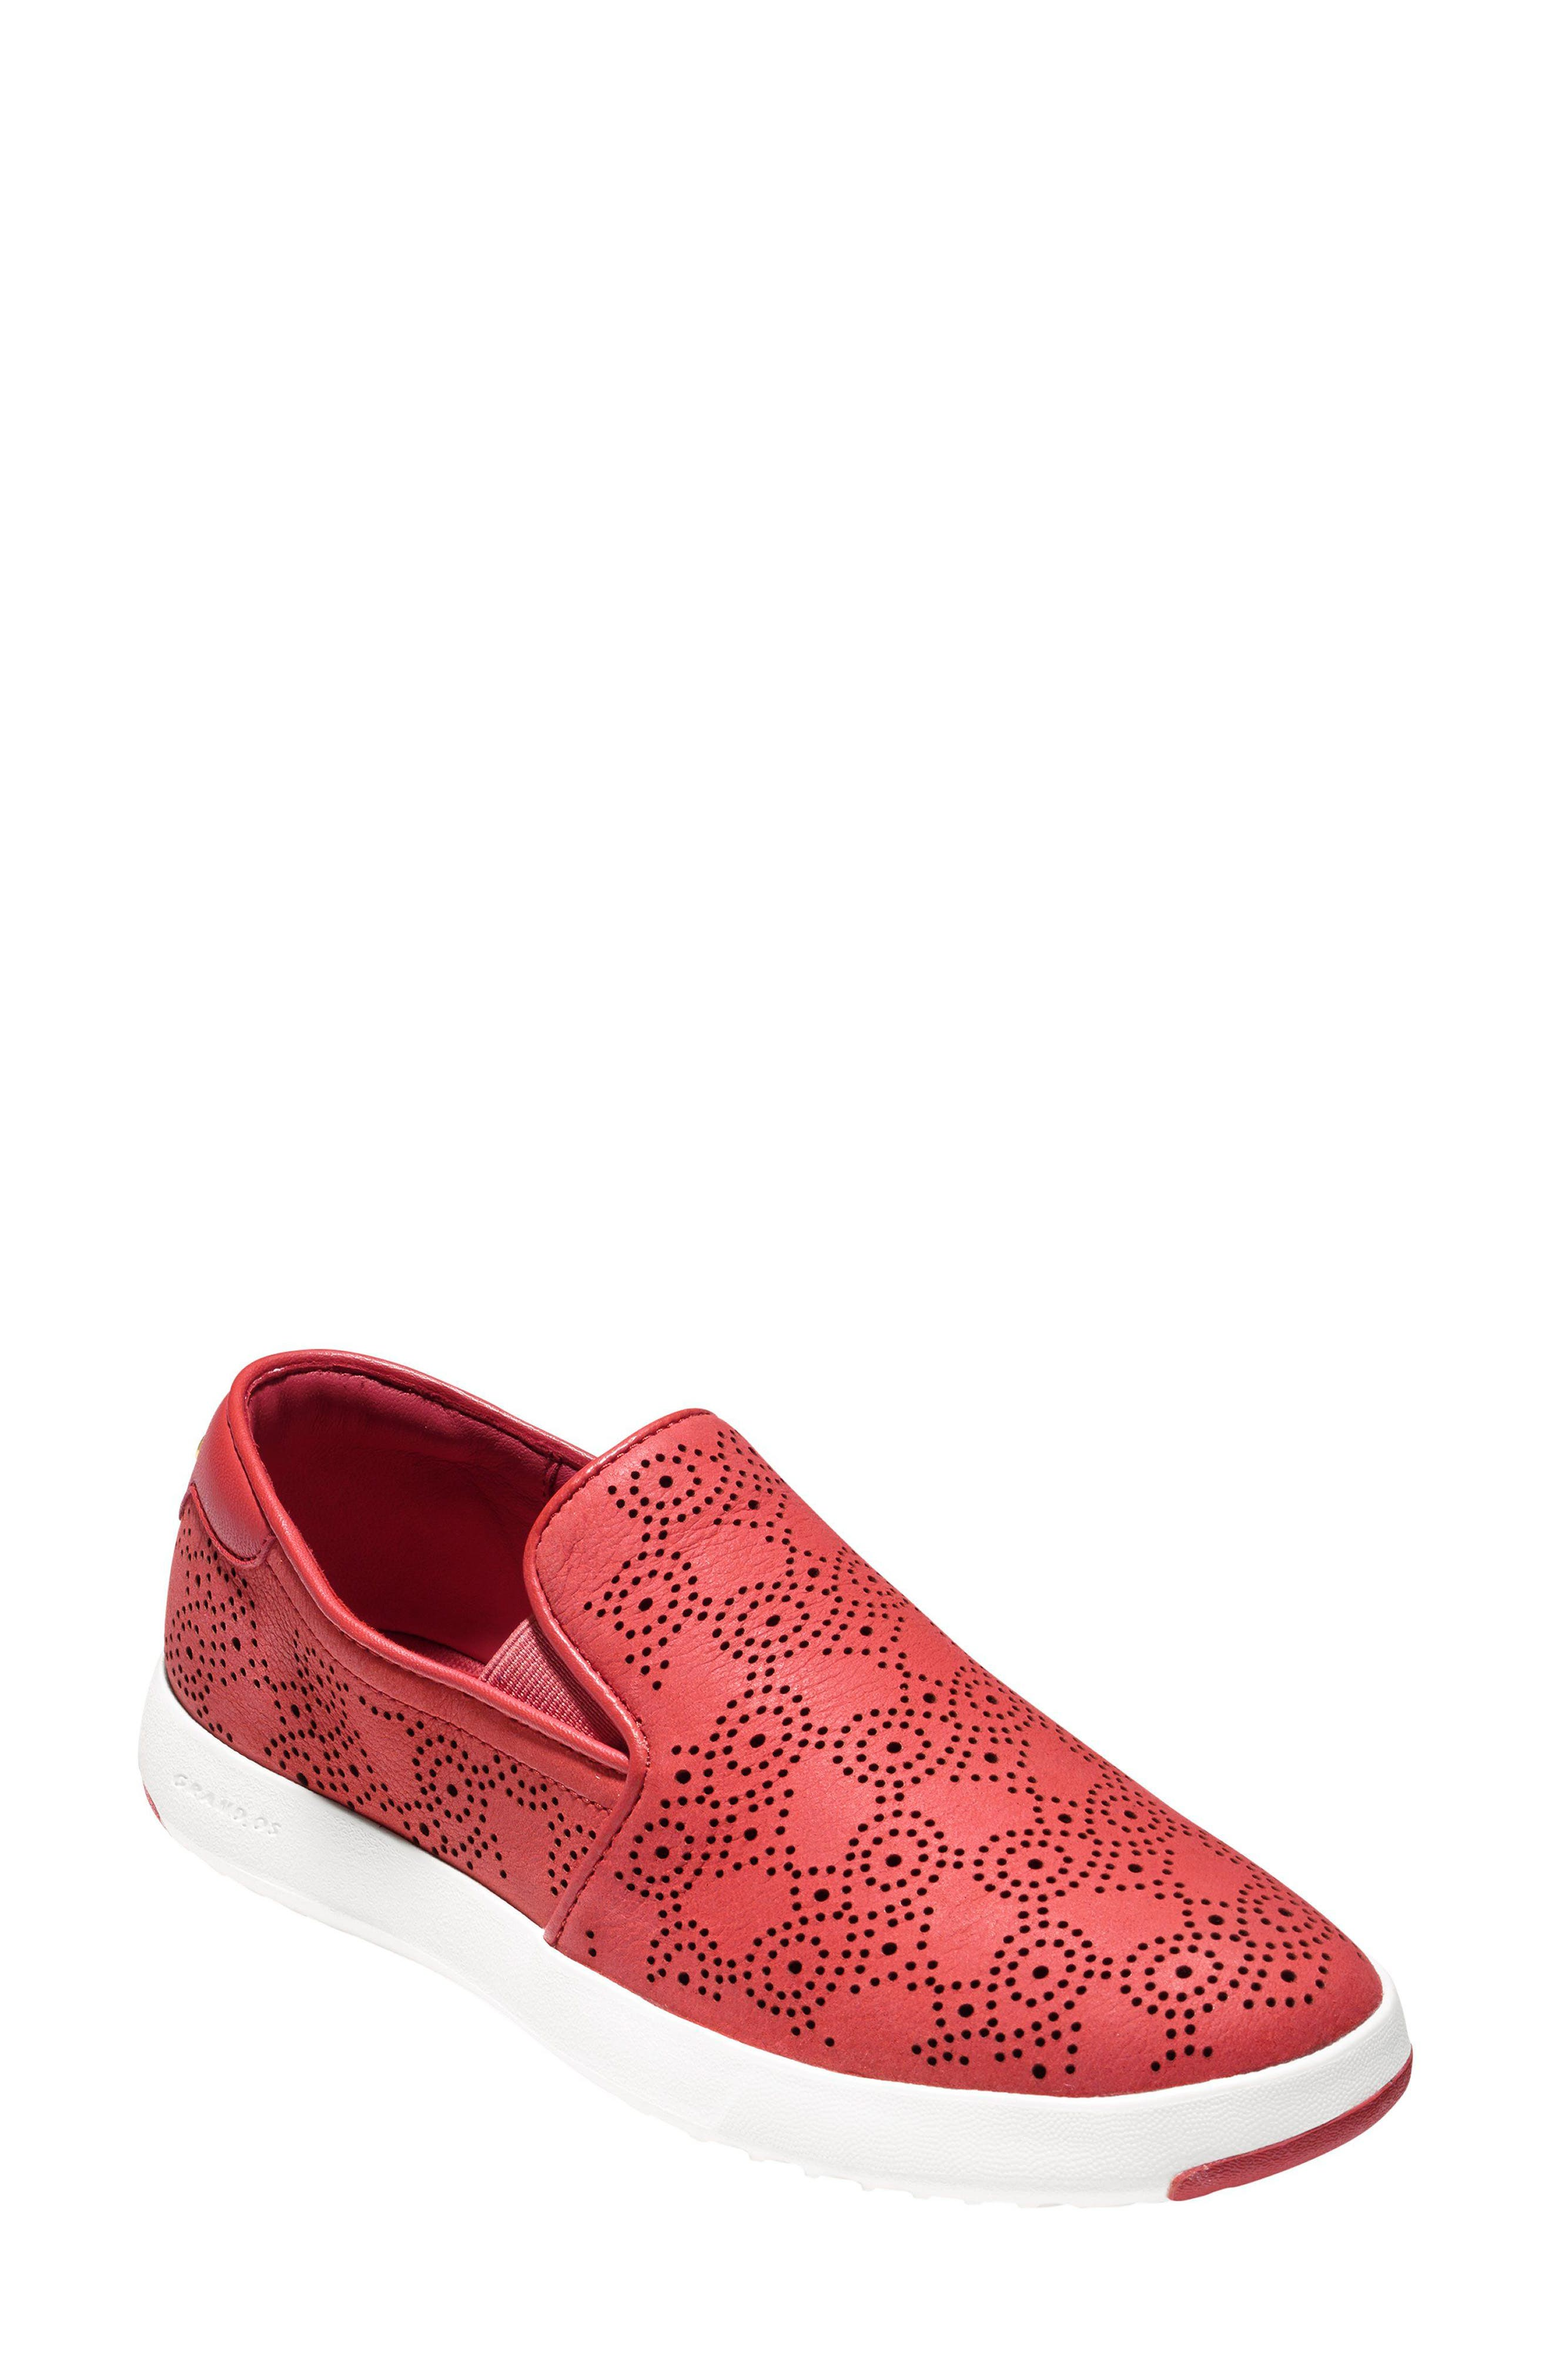 Main Image - Cole Haan GrandPro Perforated Slip-On Sneaker (Women)